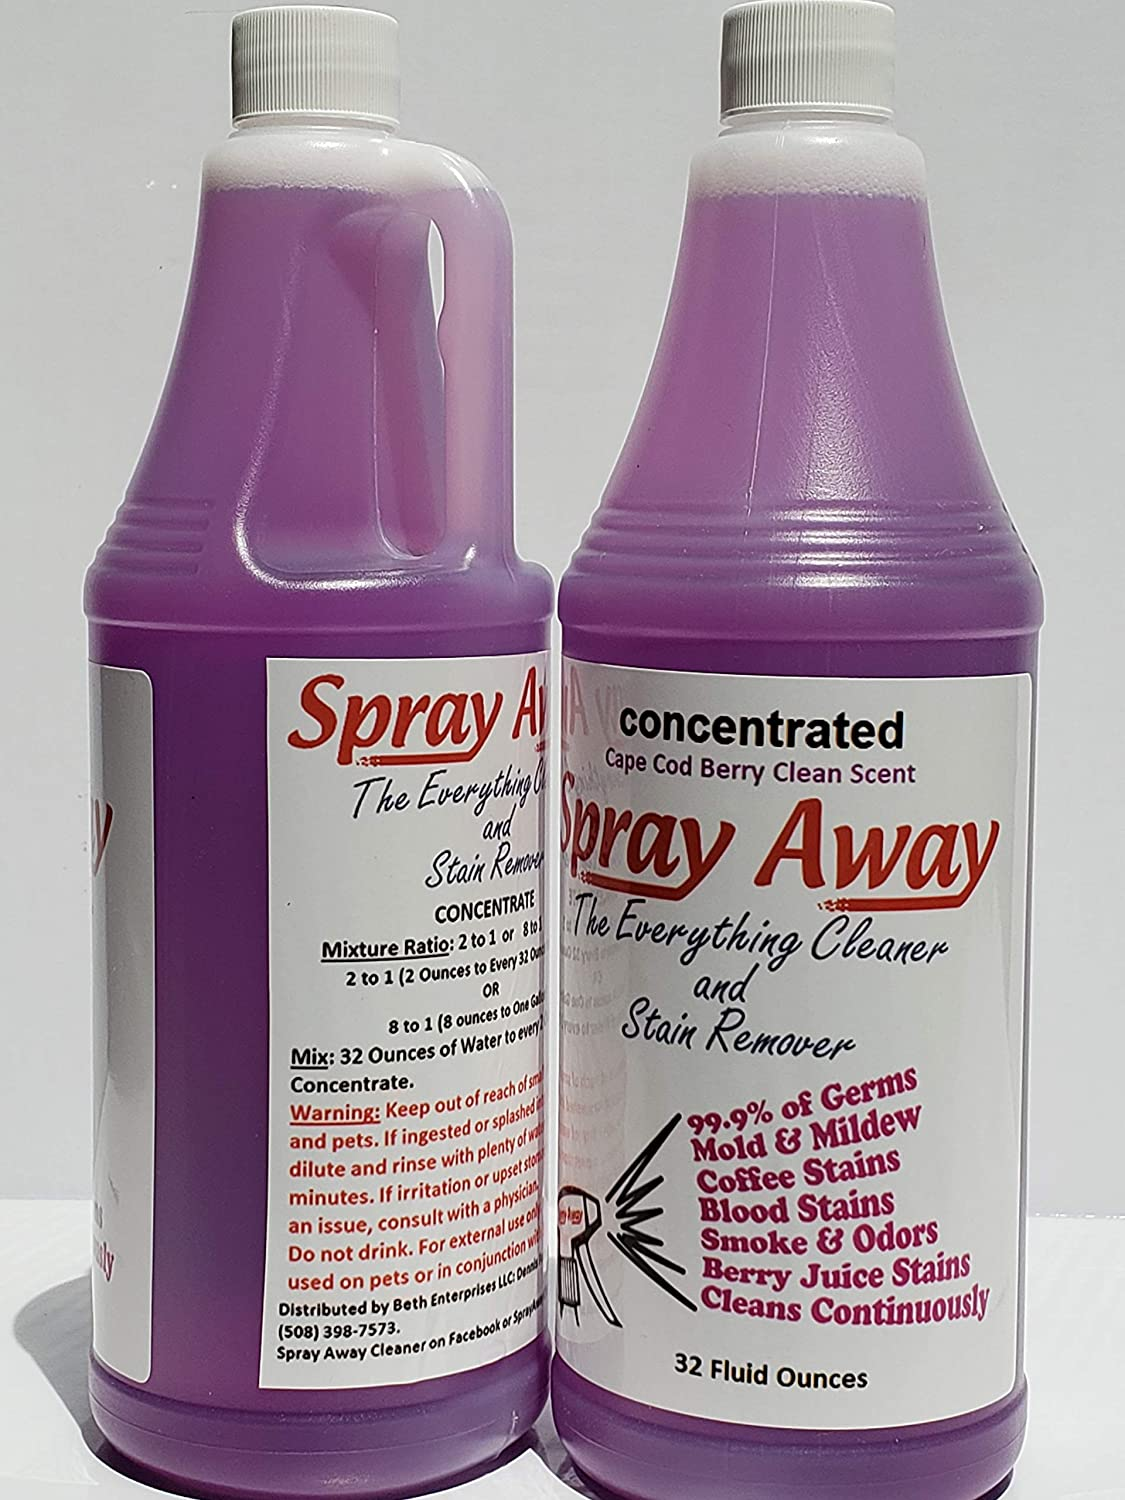 Spray Away Cleaner Concentrate 32oz in the Cape Cod Berry Clean Scent